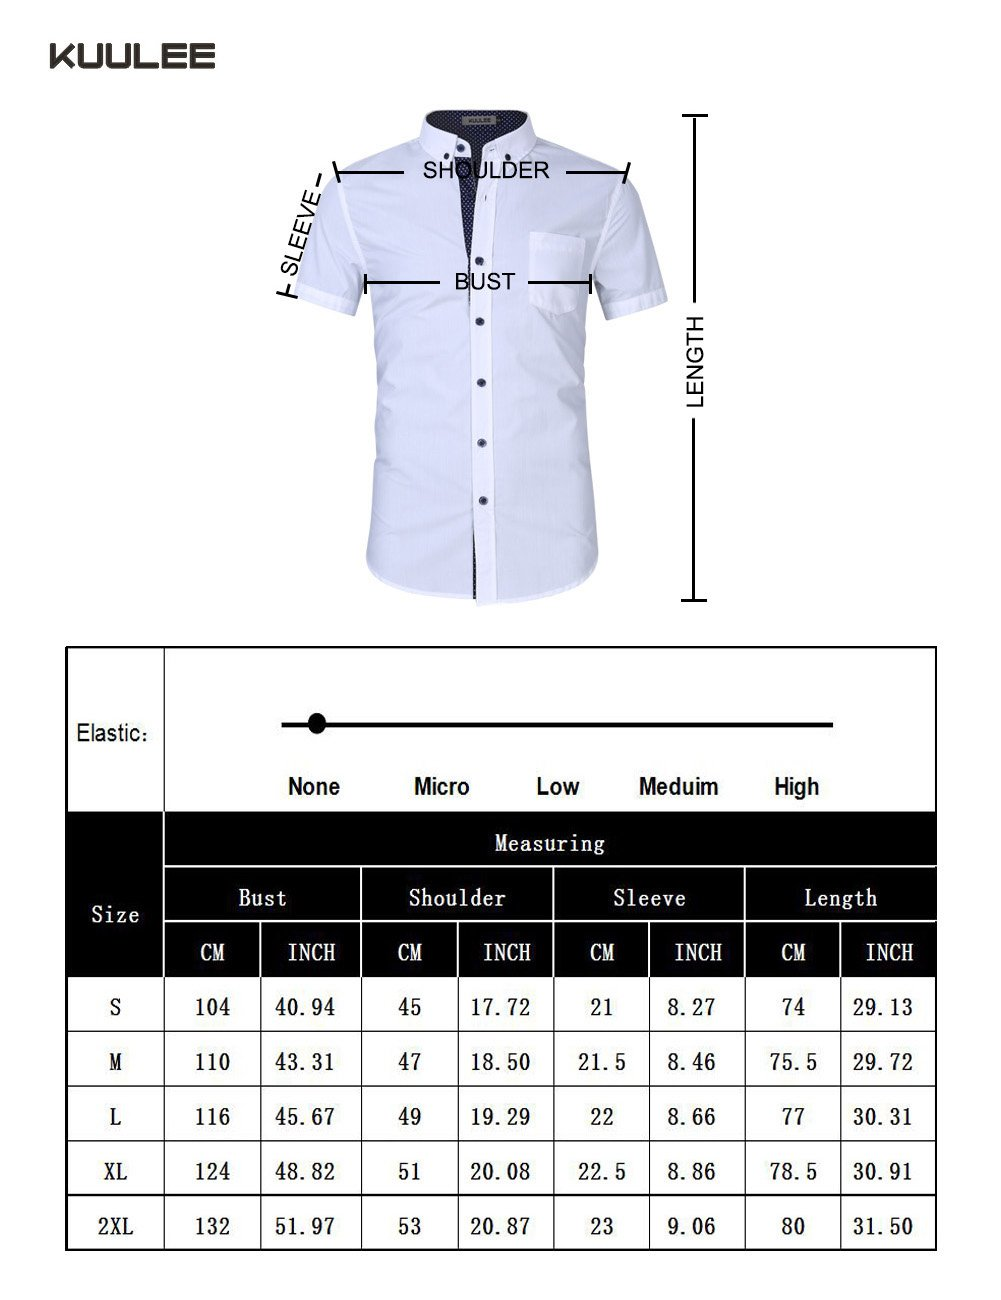 Kuulee Men's Casual Slim Fit Short Sleeve Button Down Business Shirt Cotton Dress Shirts White XXL by Kuulee (Image #7)